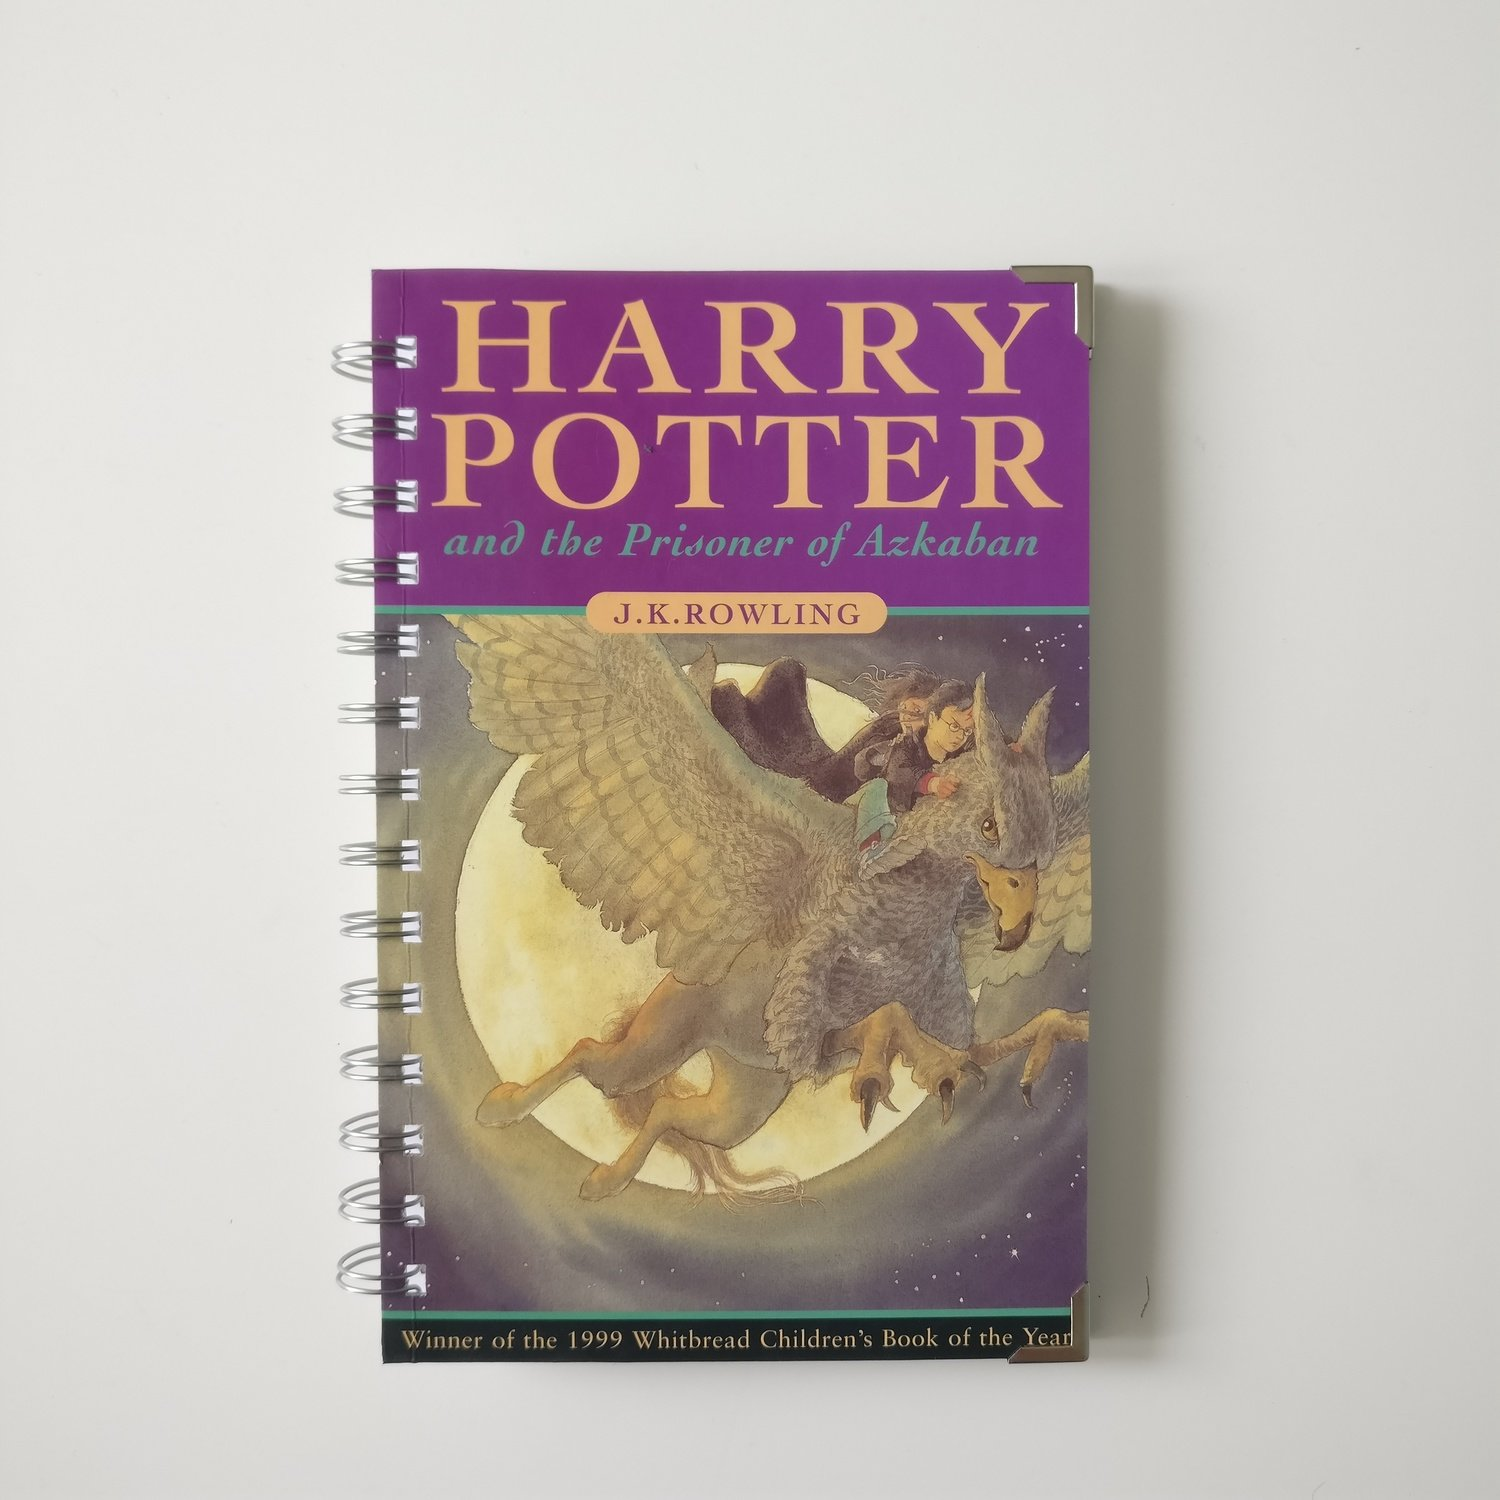 Harry Potter and the Prisoner of Azkaban Notebook made from a paperback book